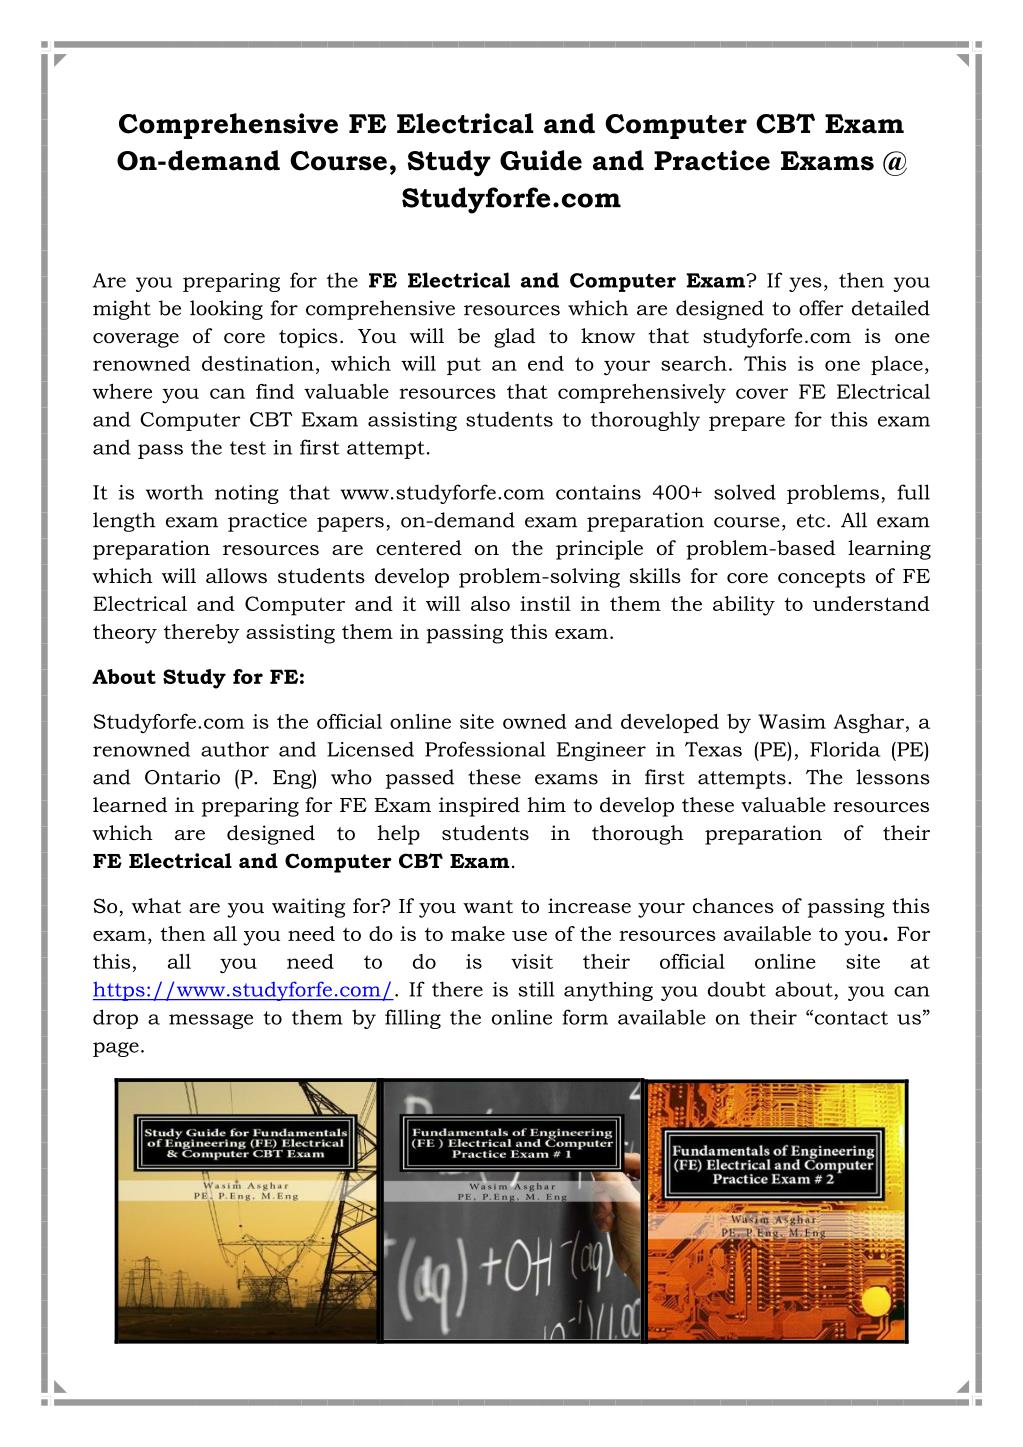 Ppt Fe Electrical And Computer Cbt Exam Powerpoint Presentation Free Download Id 7434484